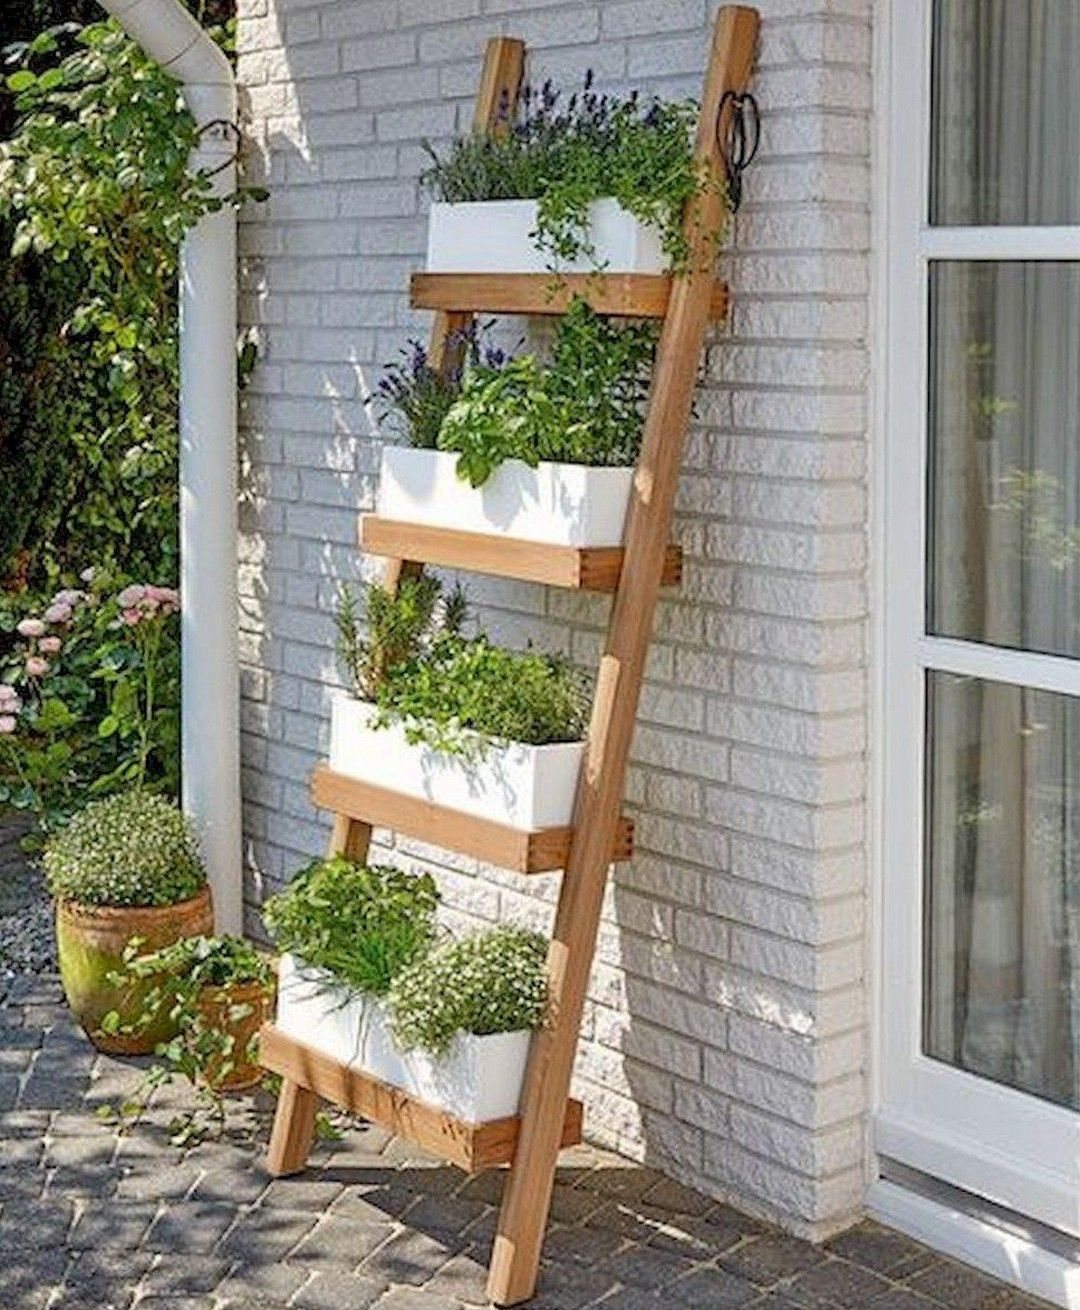 5 Vertical Vegetable Garden Ideas For Beginners: Gardening Tips For Beginners, Great Project! (With Images